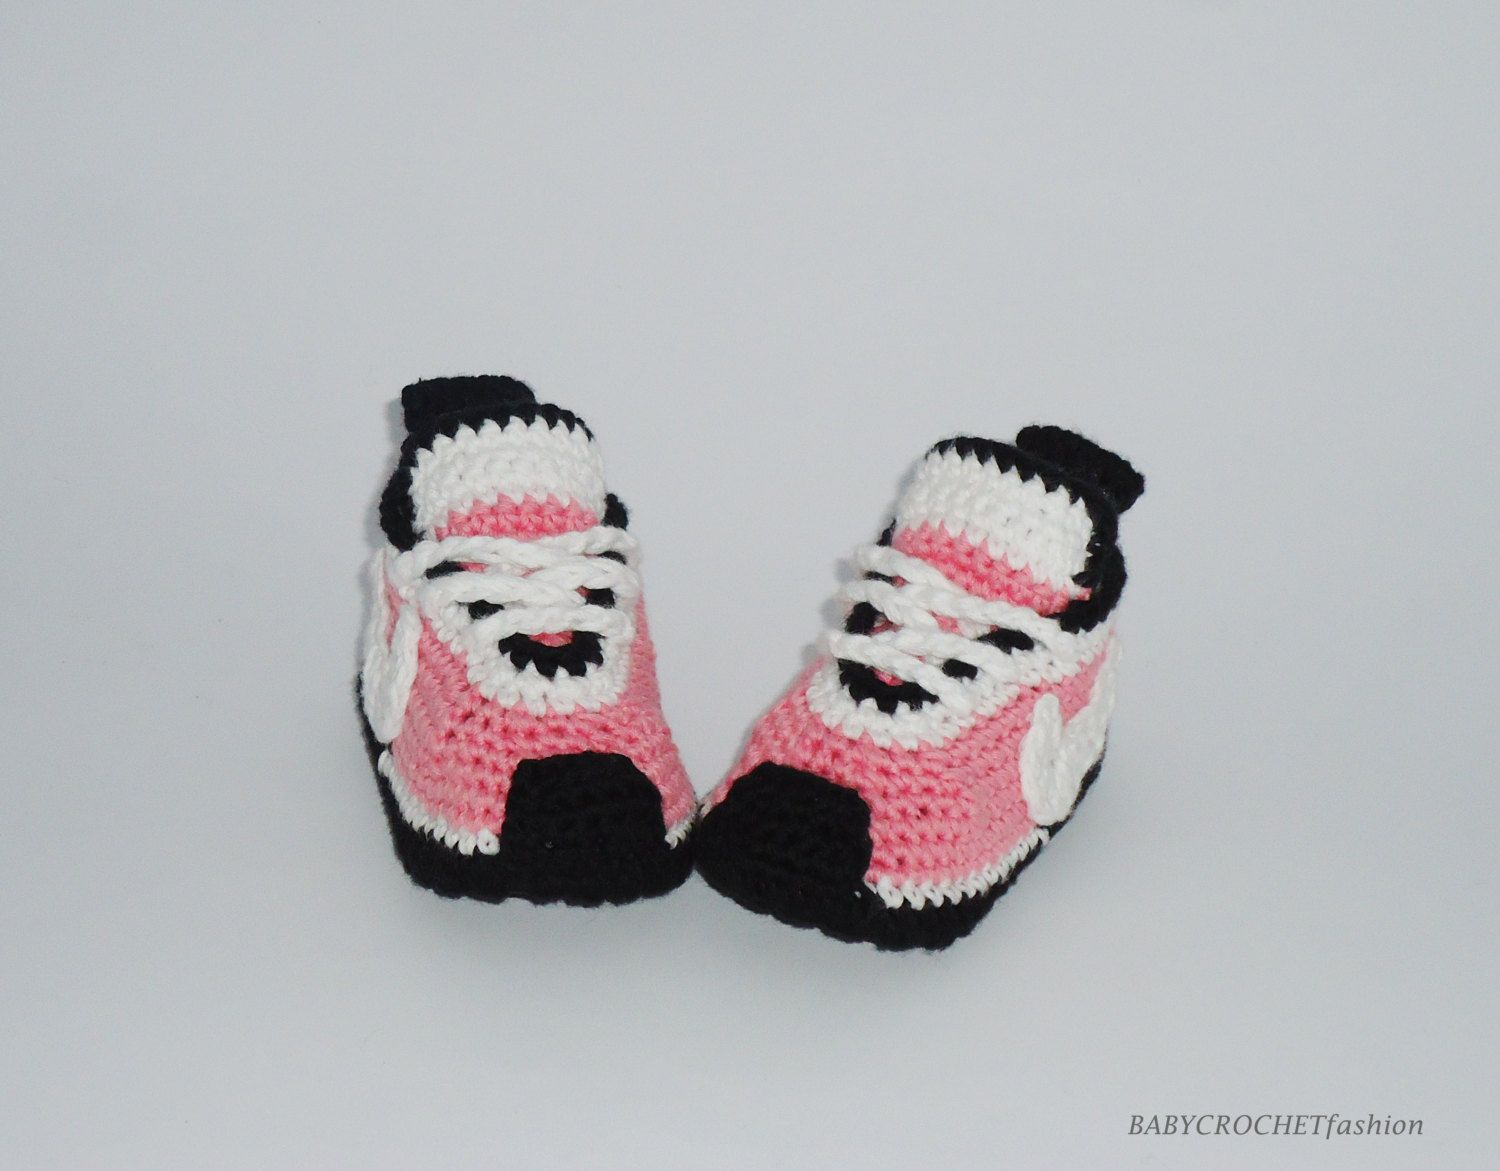 Crochet Baby Shoes, Pink Baby Shoes, Pink Baby Converse, Girls Baby Sneakers  , Nike Tennis Shoes, Baby Gift Shoes, Toddlers Baby Boots